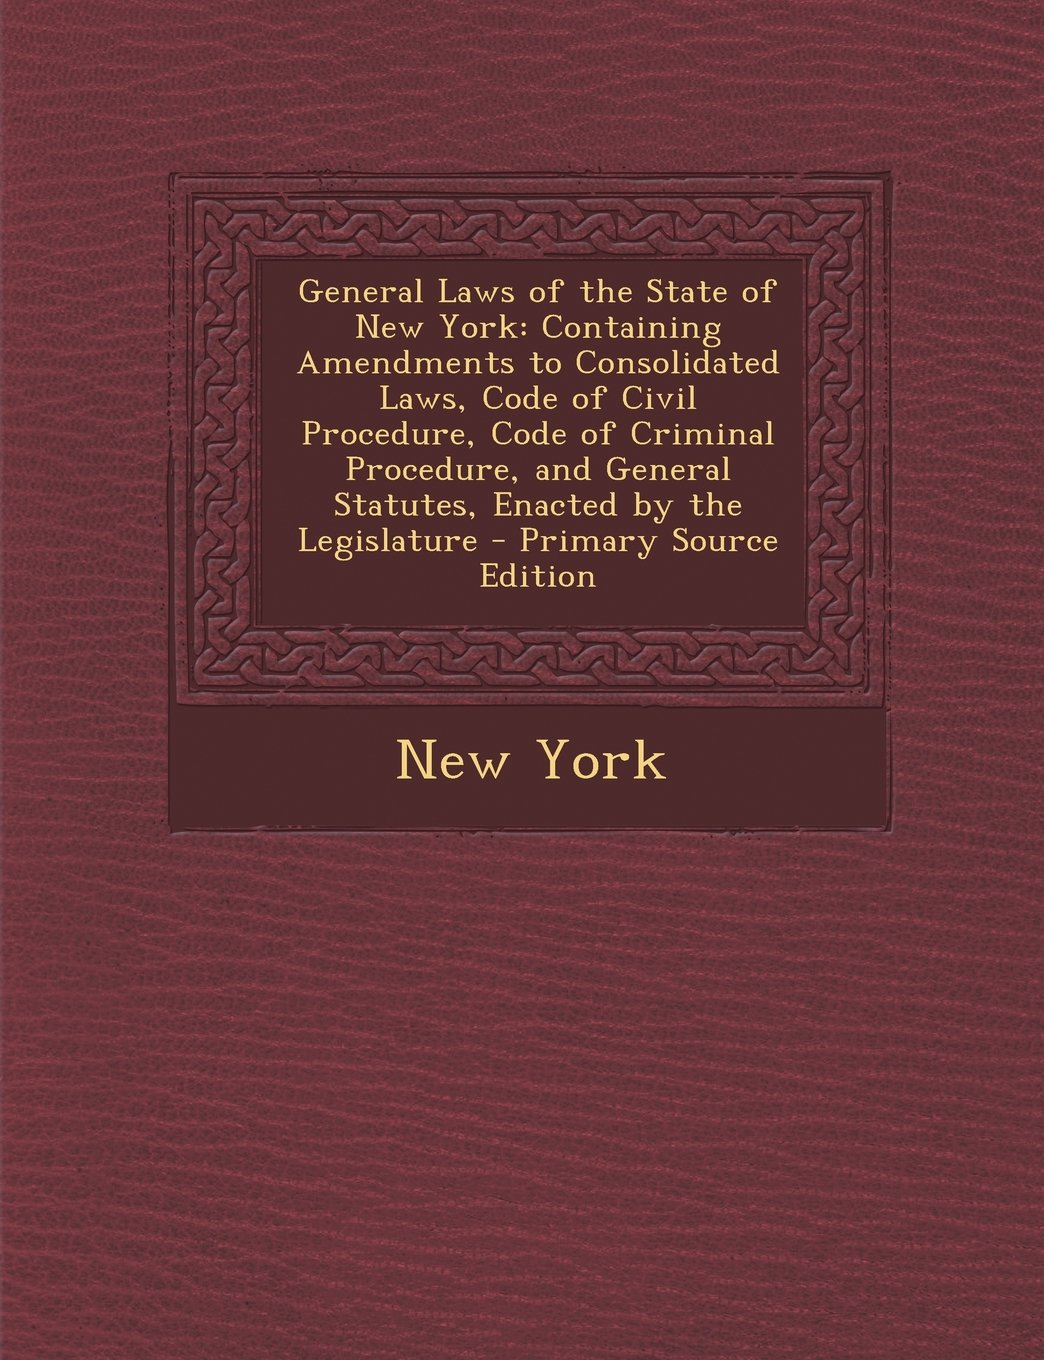 Download General Laws of the State of New York: Containing Amendments to Consolidated Laws, Code of Civil Procedure, Code of Criminal Procedure, and General Statutes, Enacted by the Legislature pdf